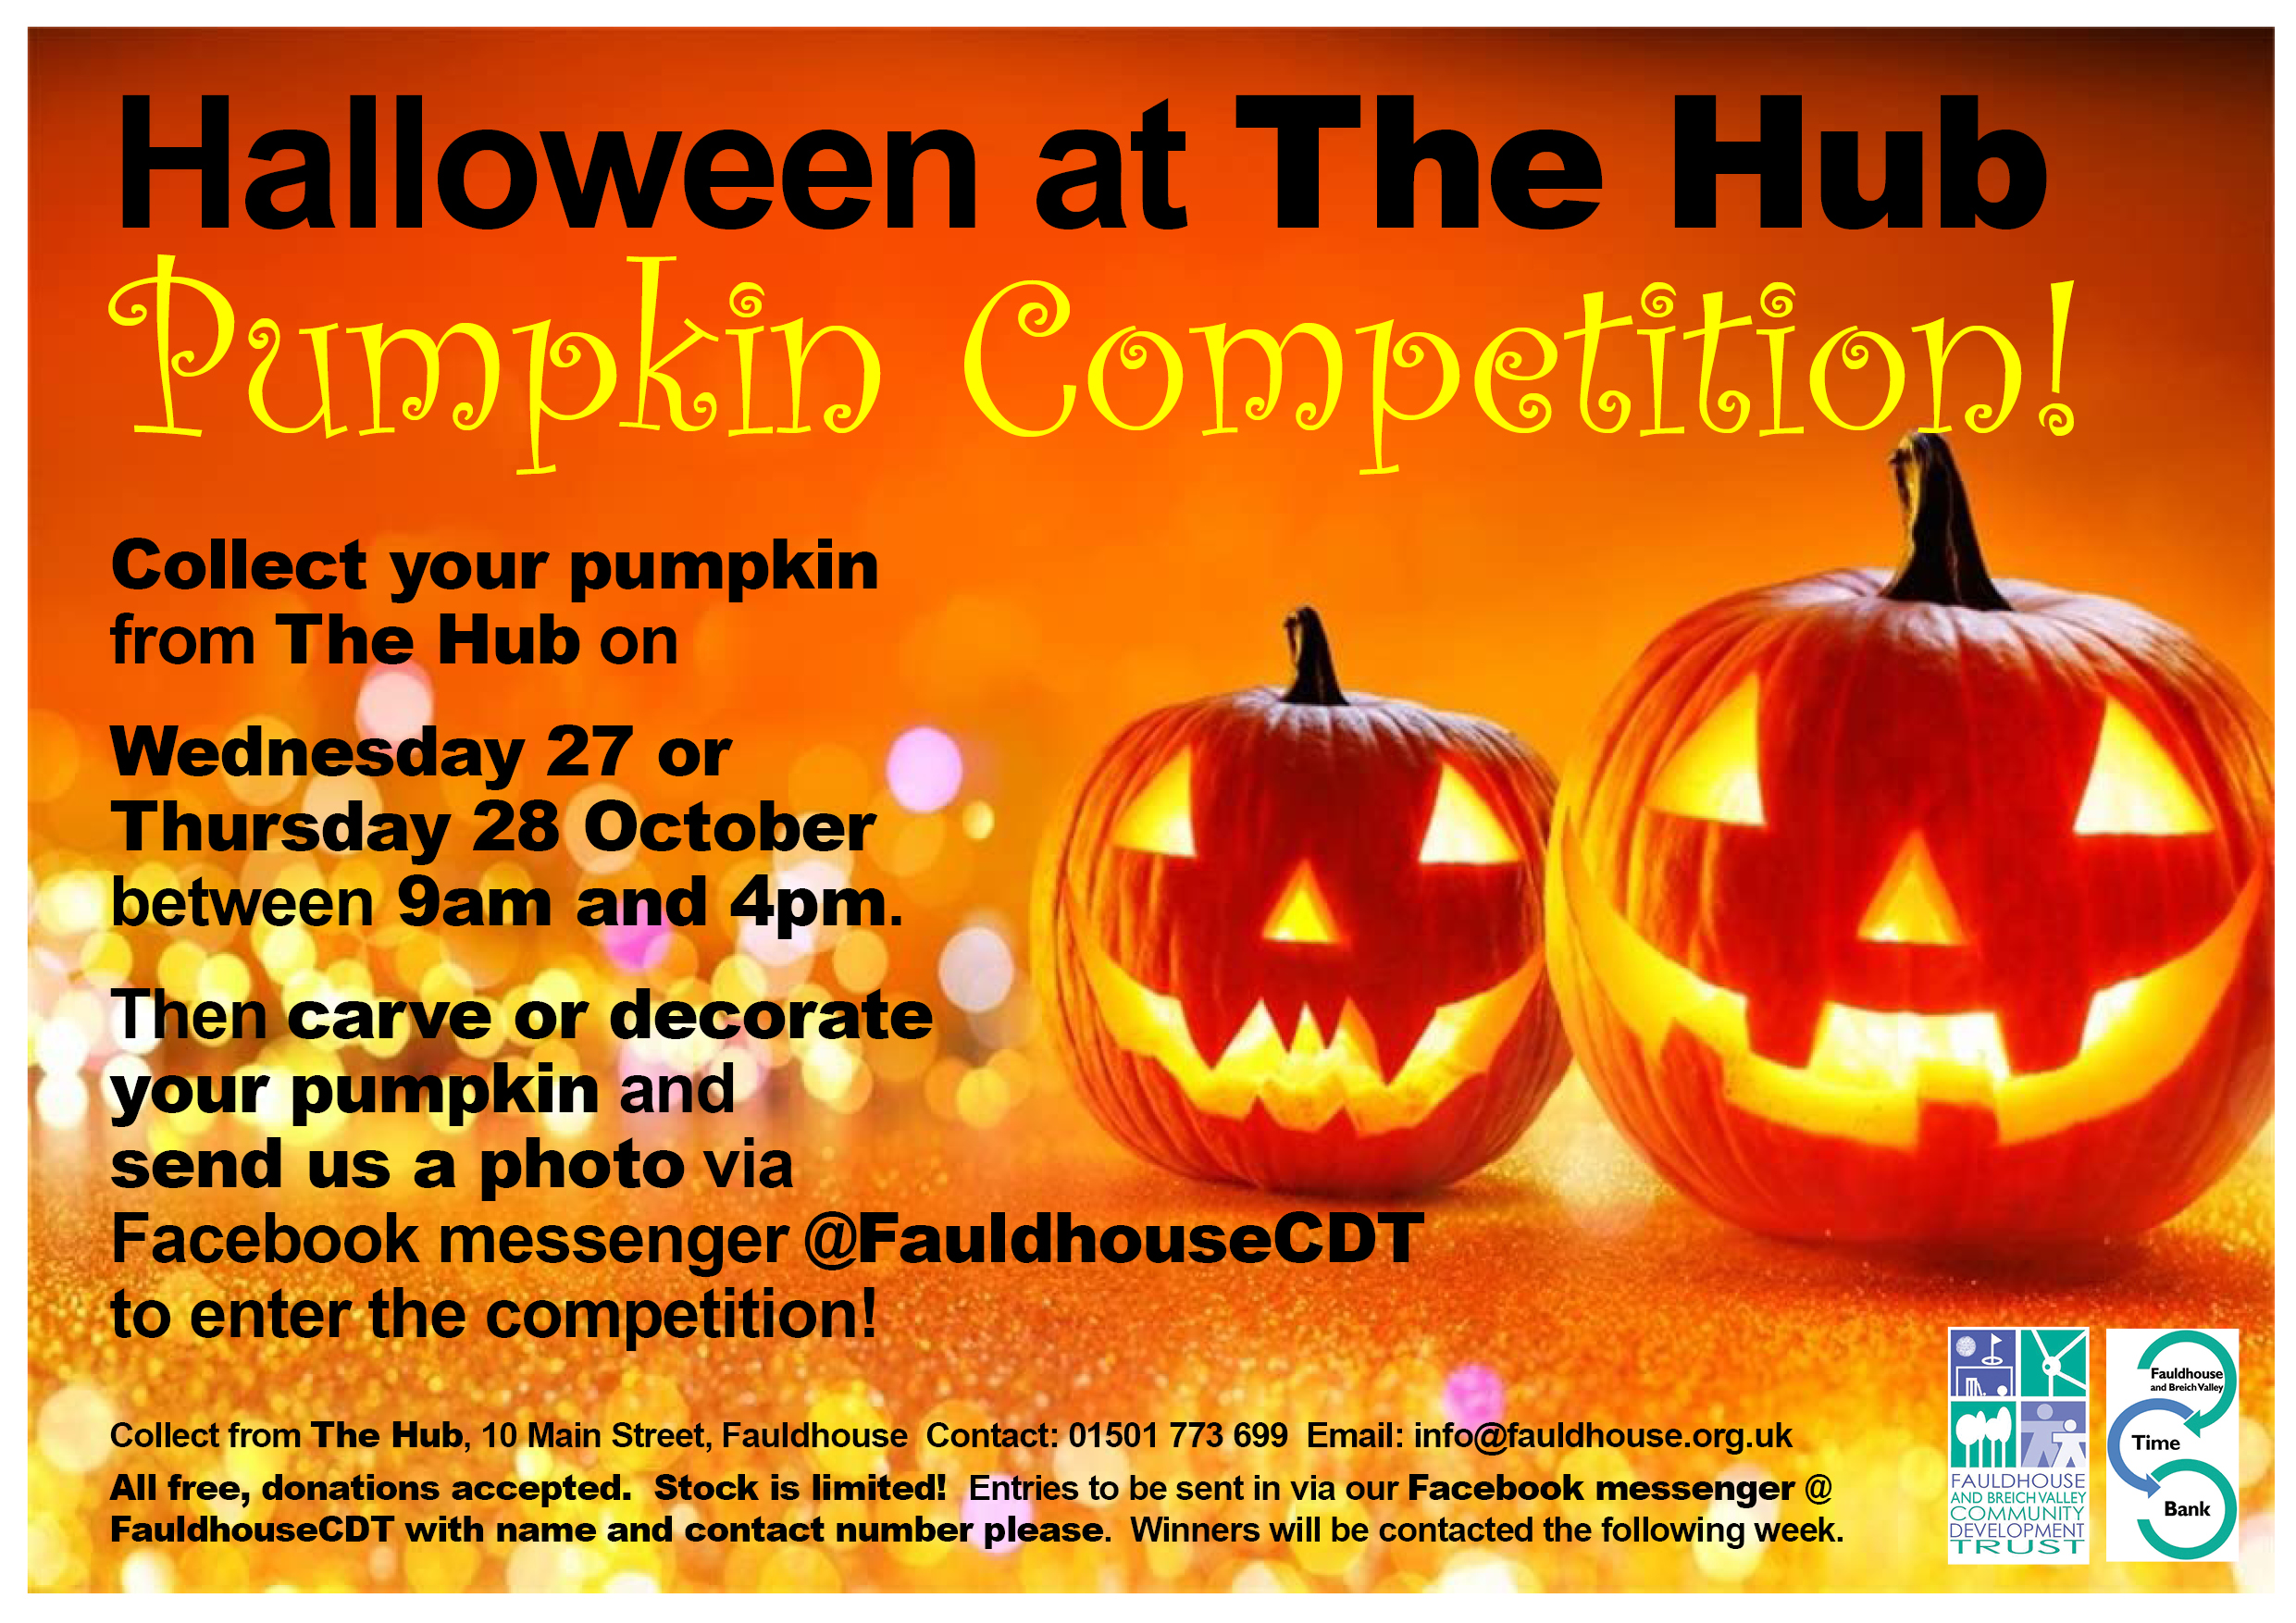 Pumpkin Competition @ The Hub